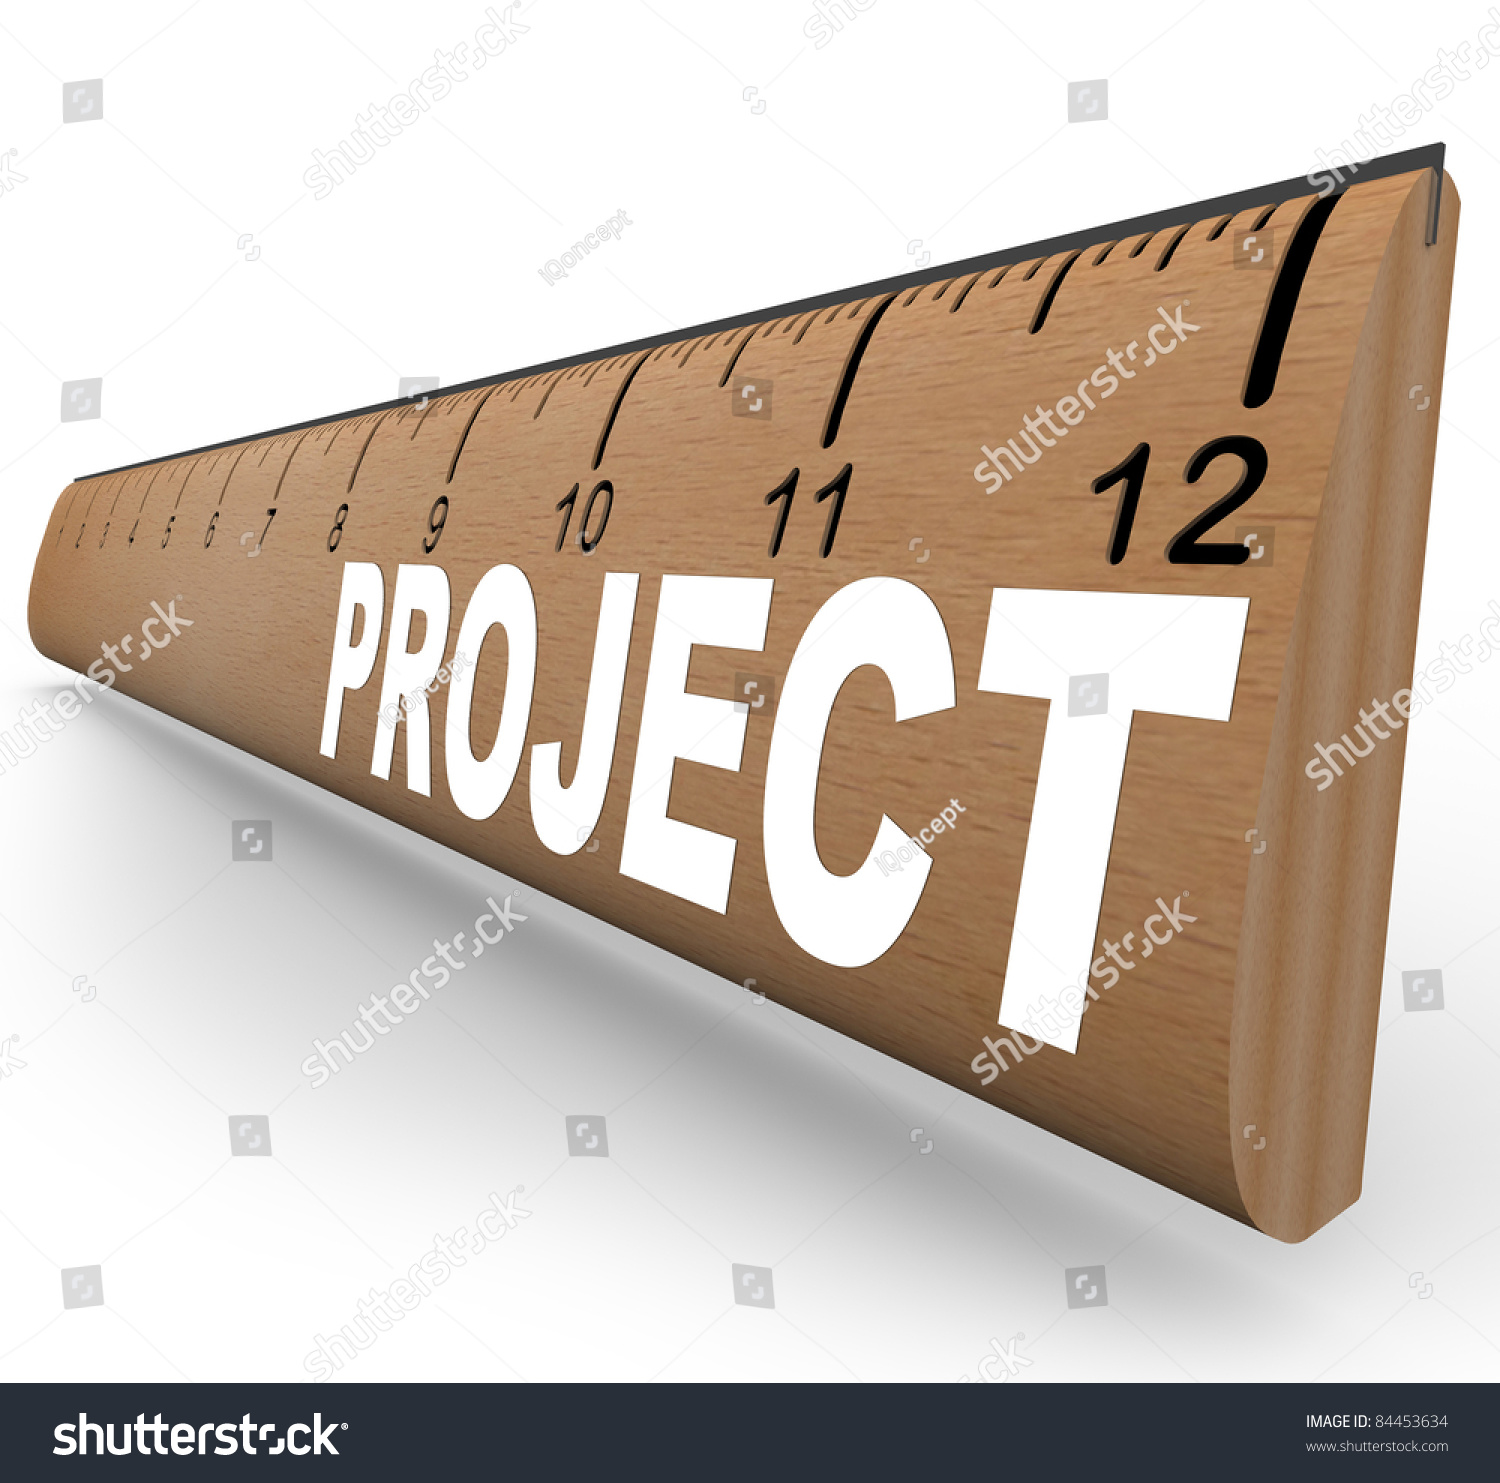 wooden ruler word project representing assignment stock a wooden ruler the word project representing an assignment for school homework or an arts